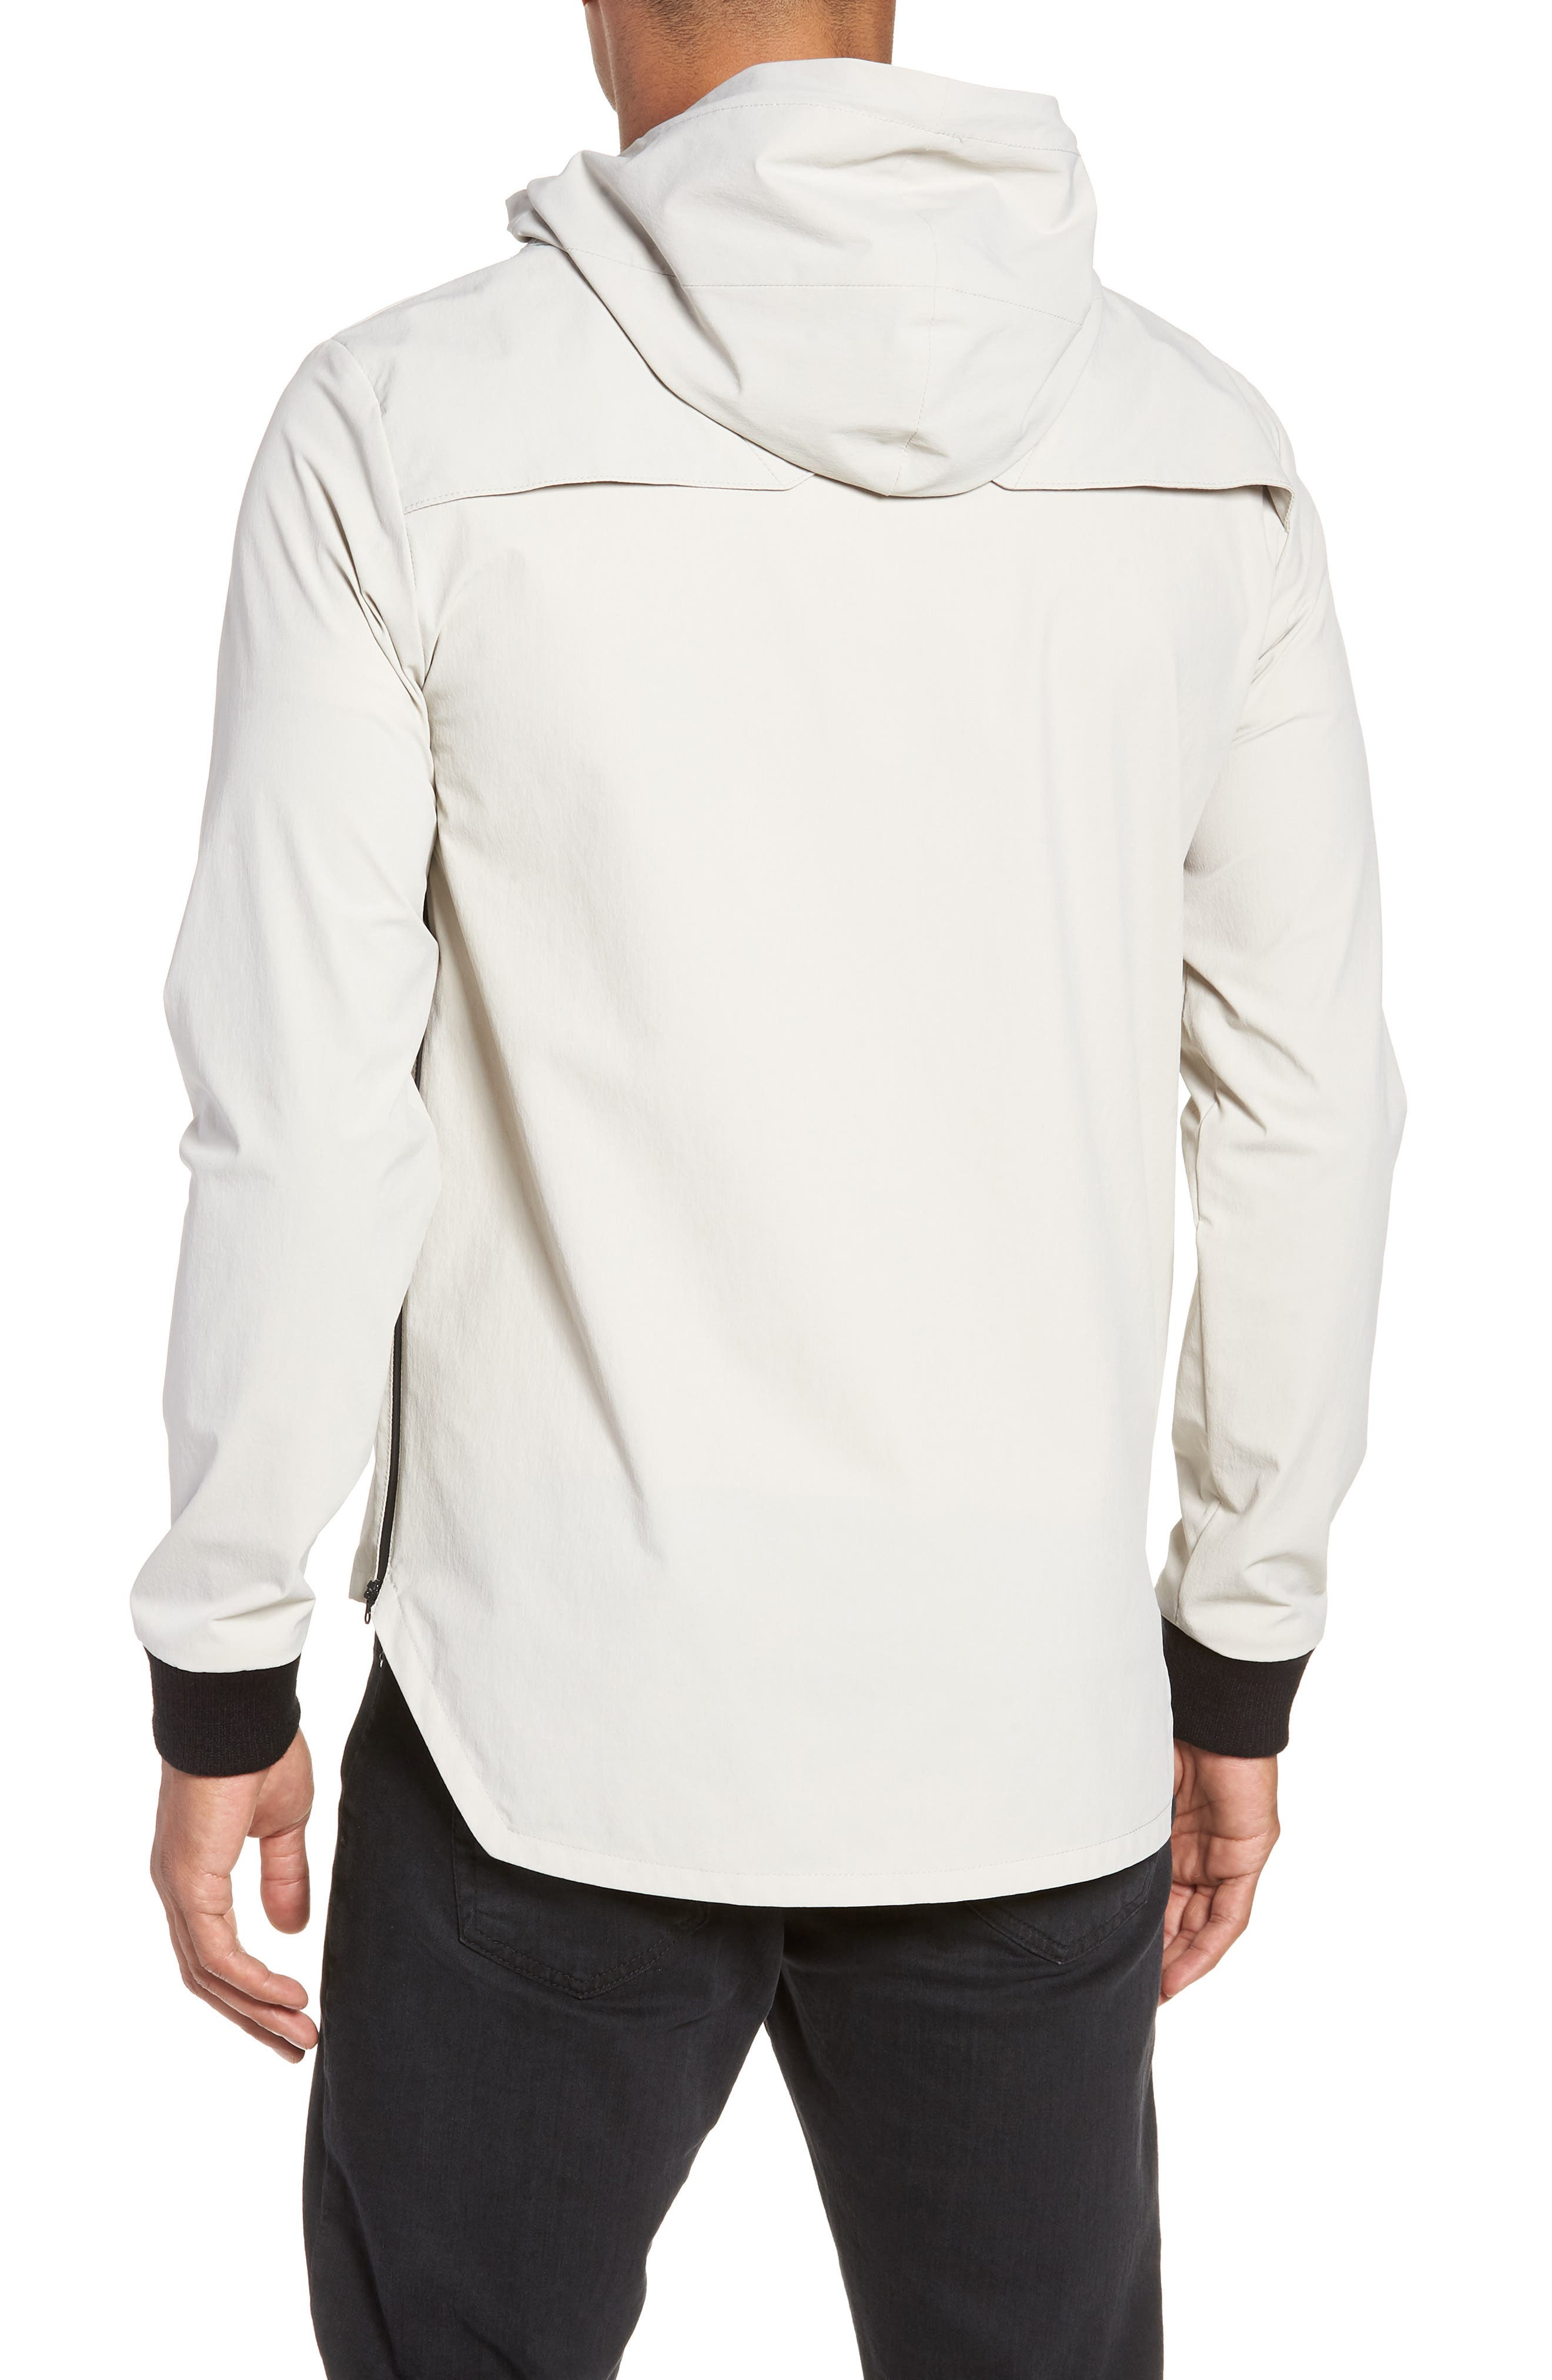 Pullover with Removable Hood,                             Alternate thumbnail 2, color,                             270